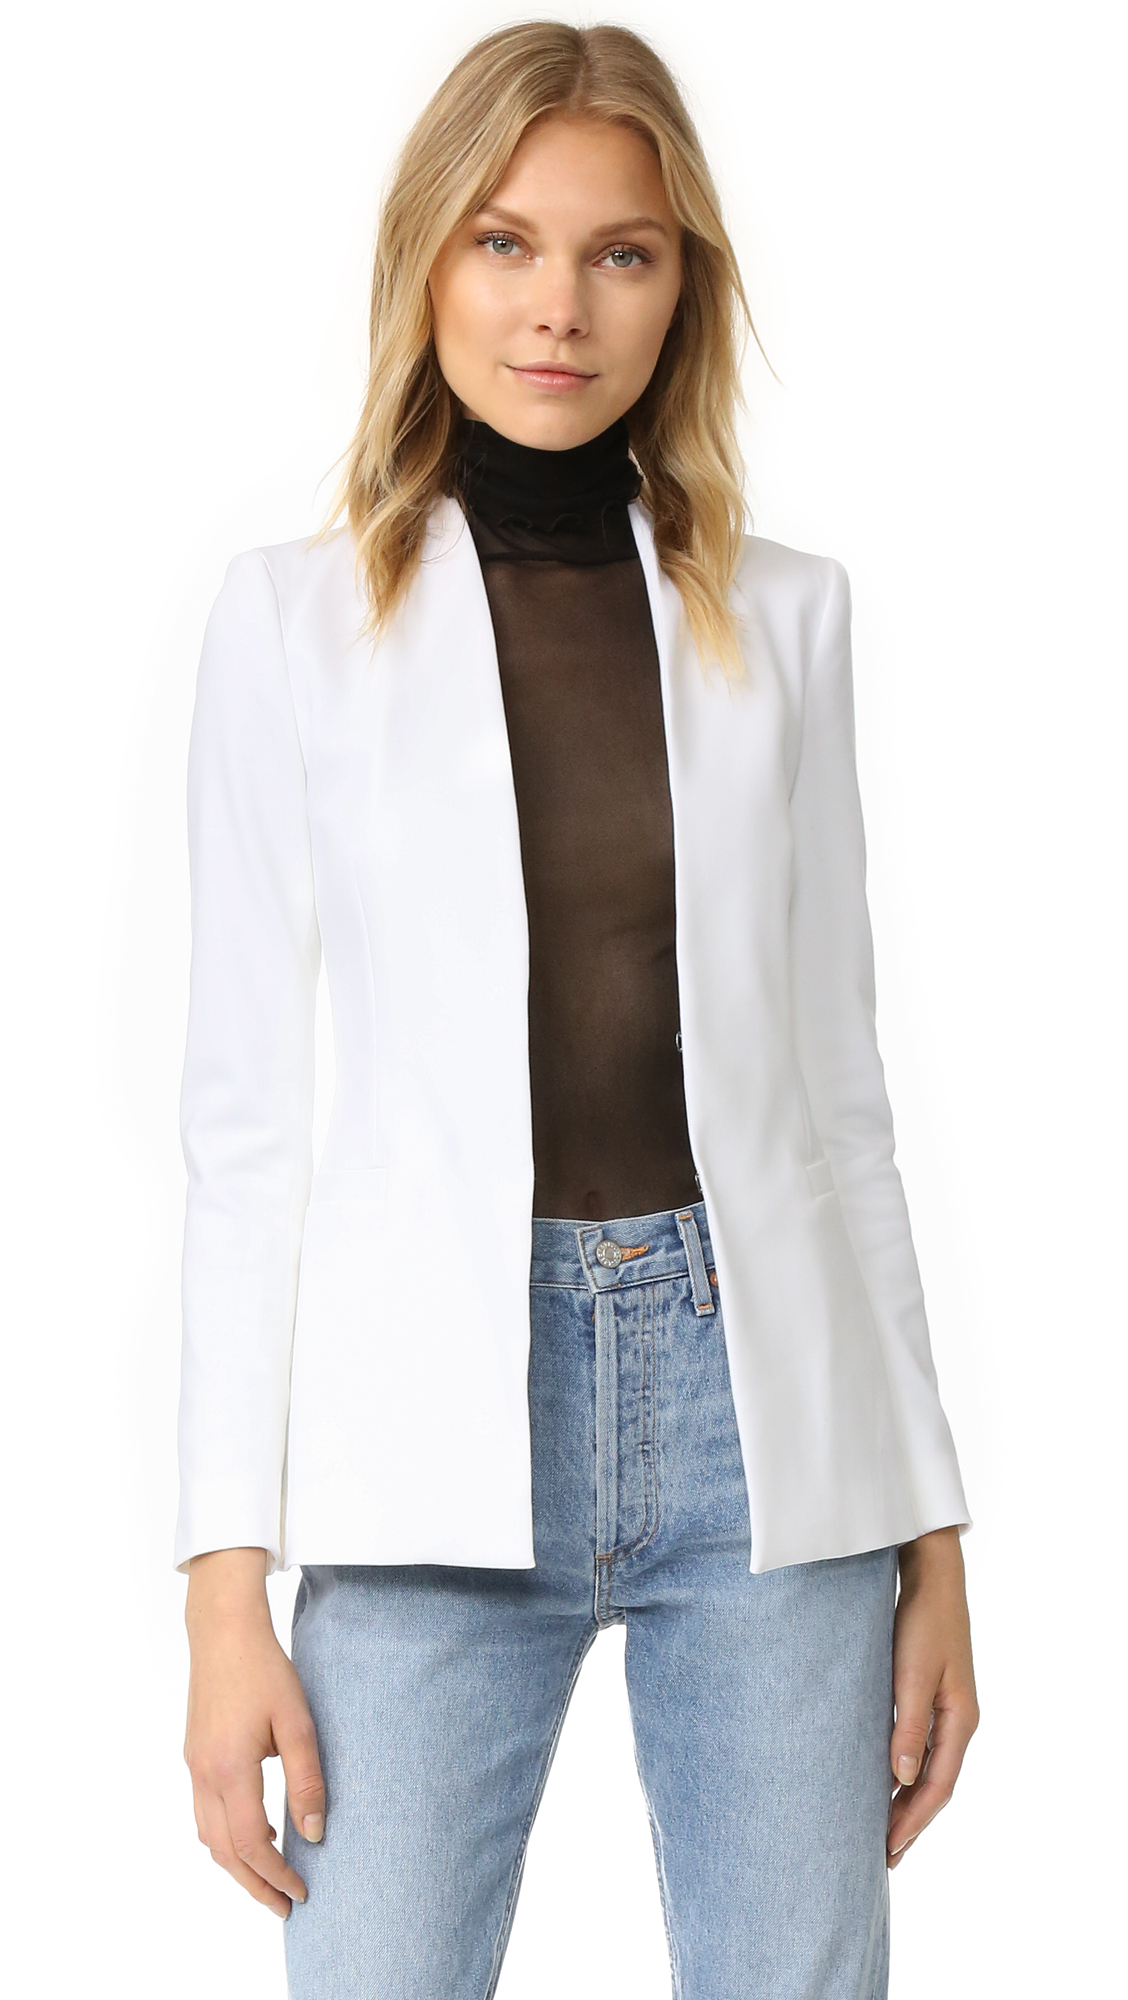 Alice + Olivia Long Open Front Collarless Blazer - White at Shopbop